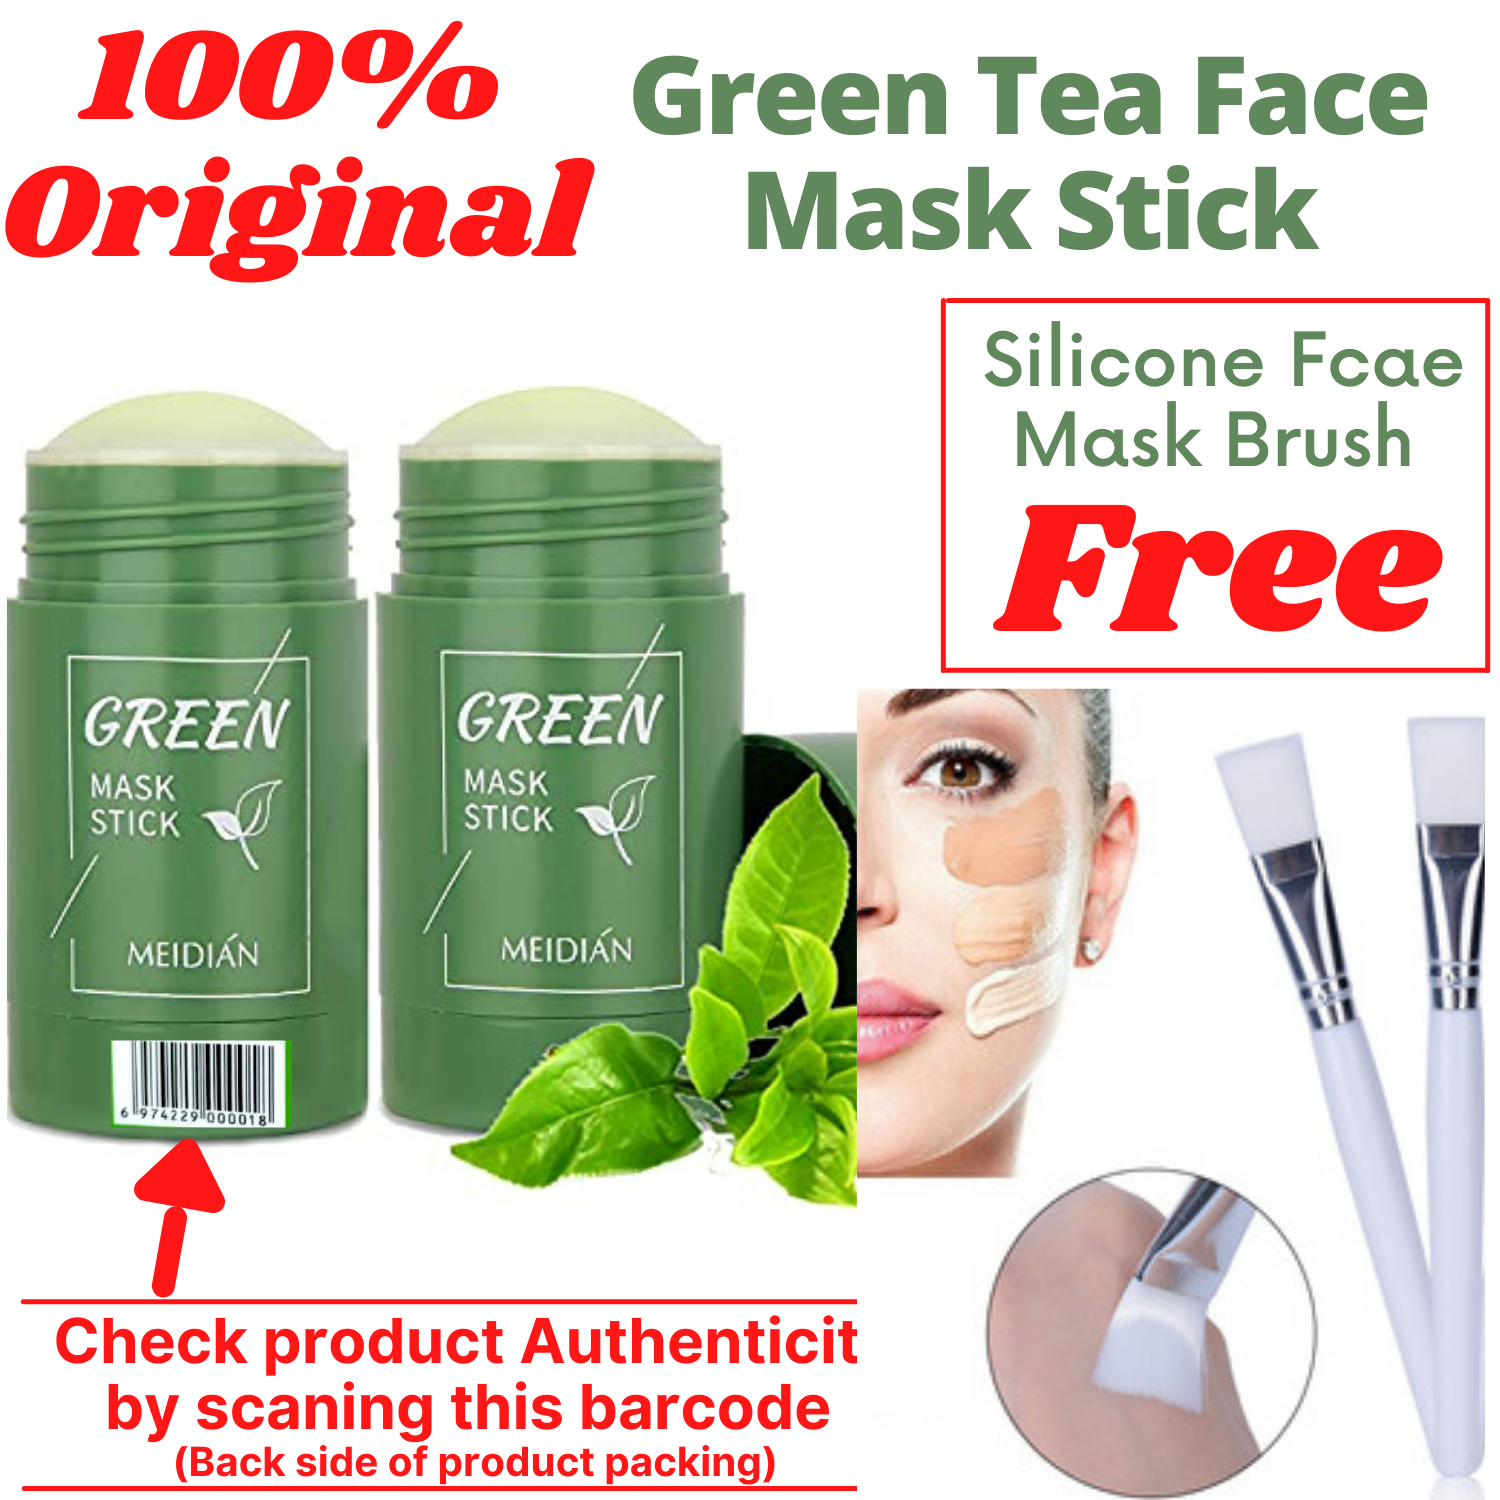 Green Tea Cleansing Mask Purifying Clay Stick Mask Oil Control Skin Care Anti-Acne Blackhead Mud Mask